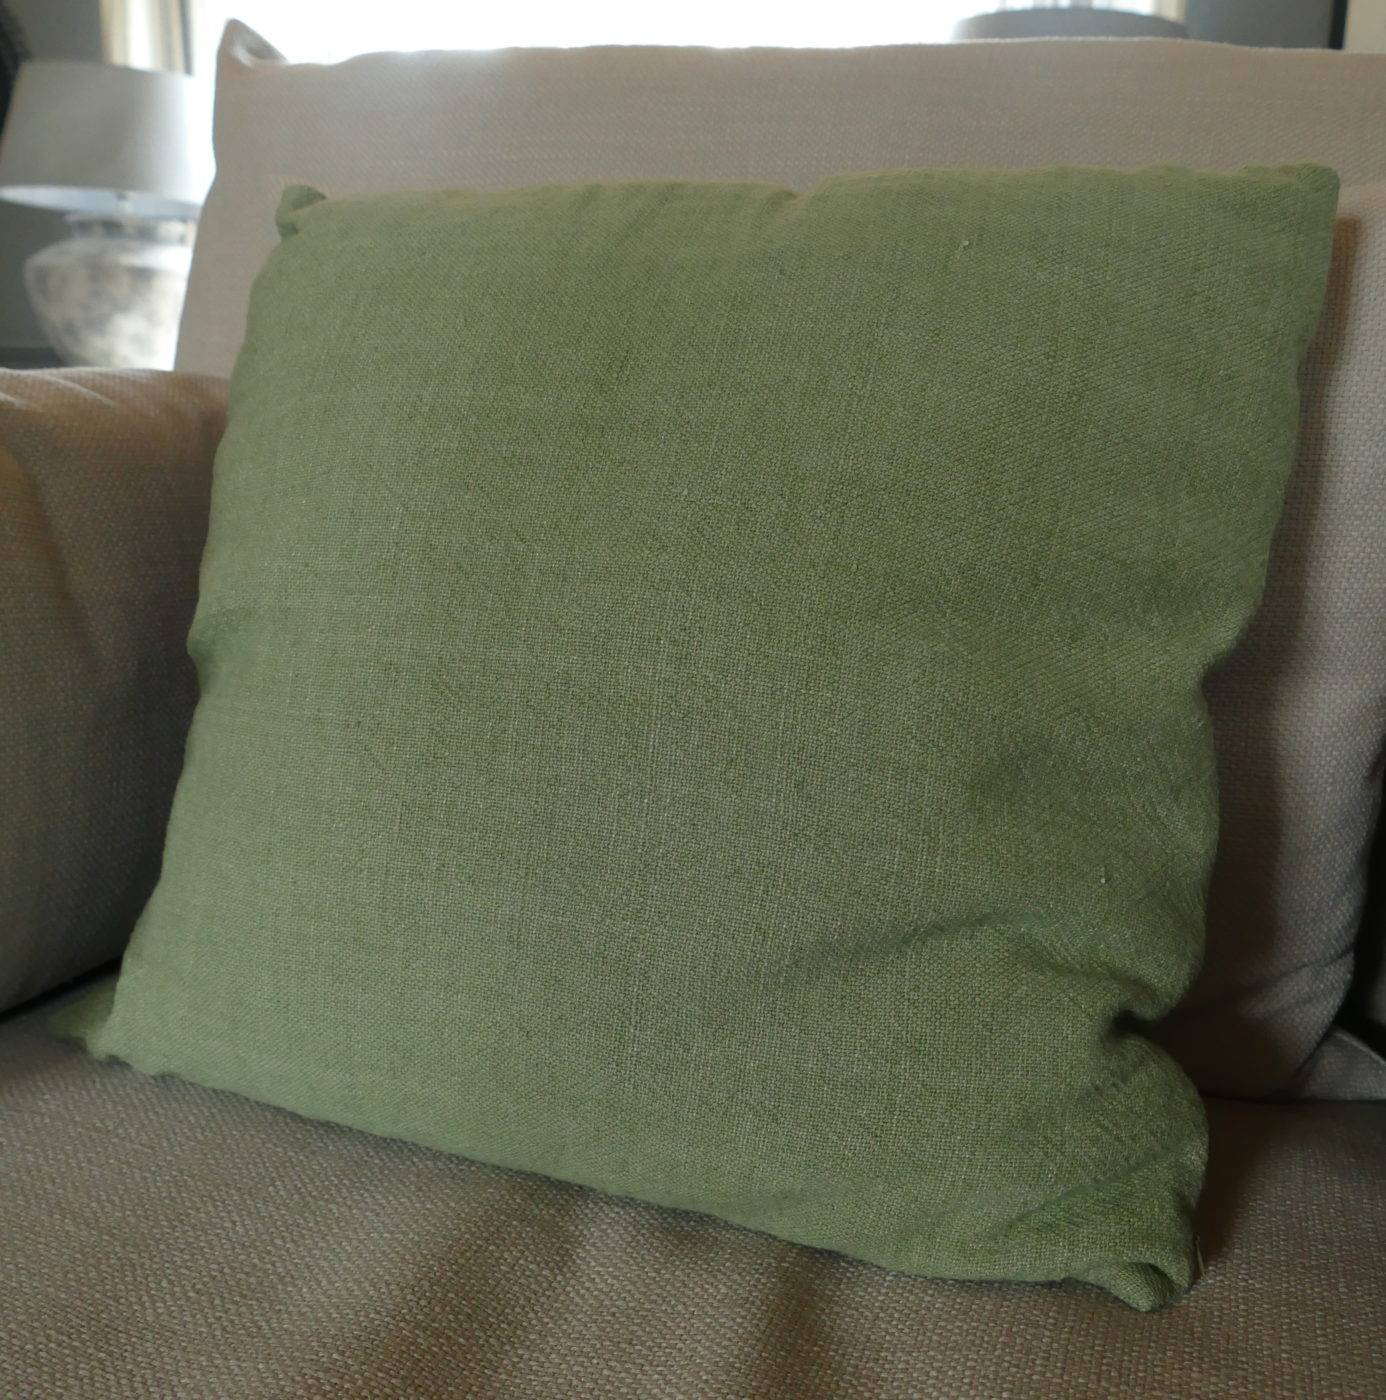 green twill square cushion on sofa